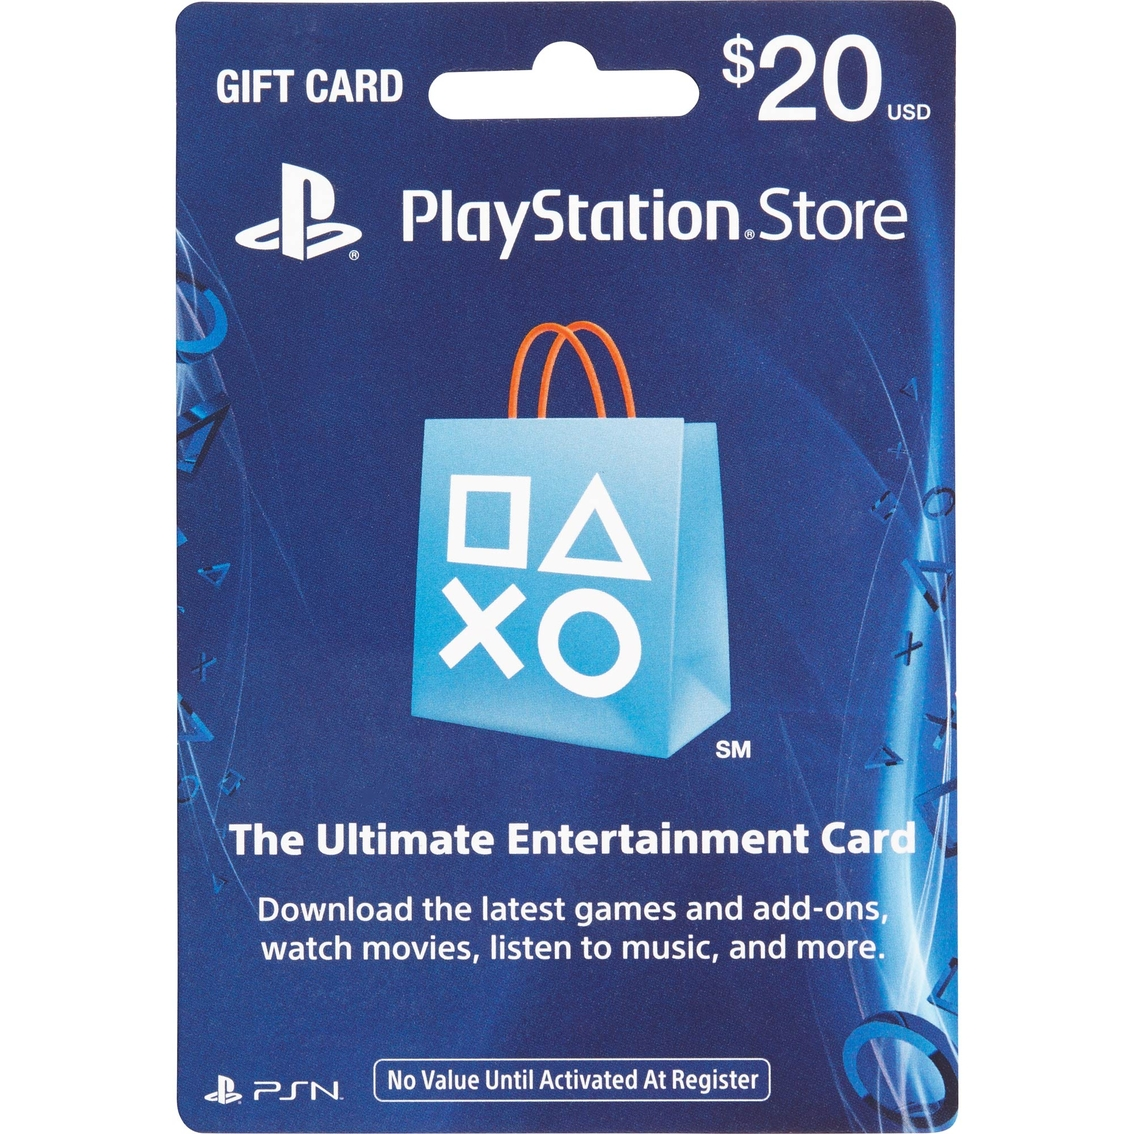 Sony Playstation Store Gift Card $20.00